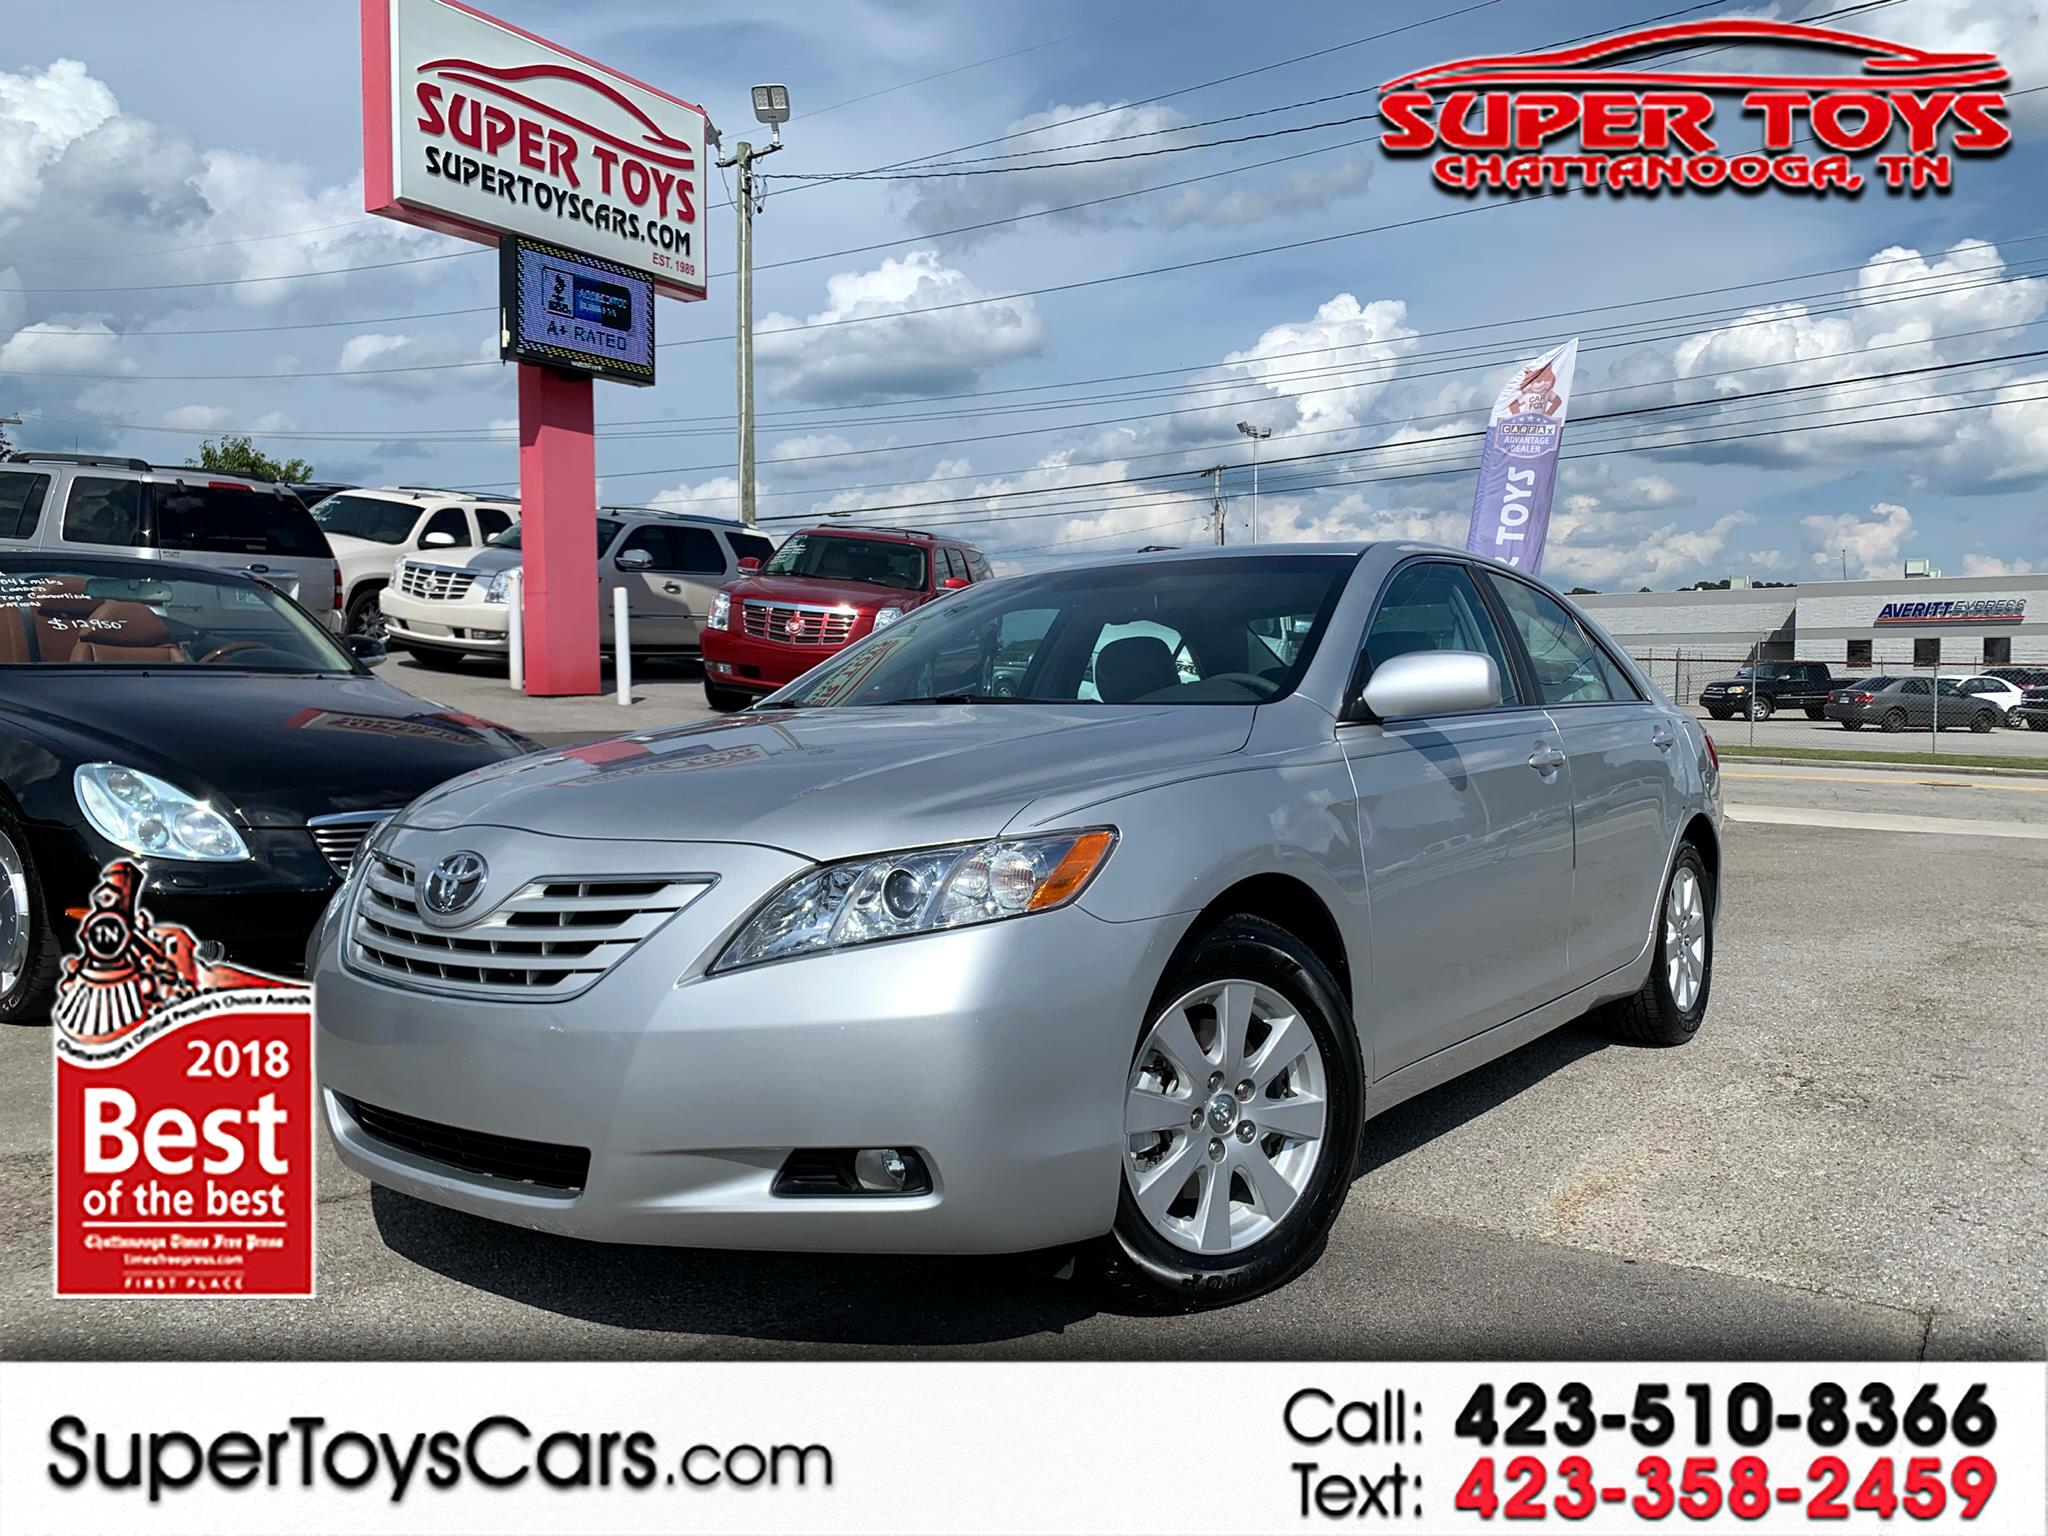 2009 Toyota Camry 4dr Sdn V6 Auto XLE (Natl)